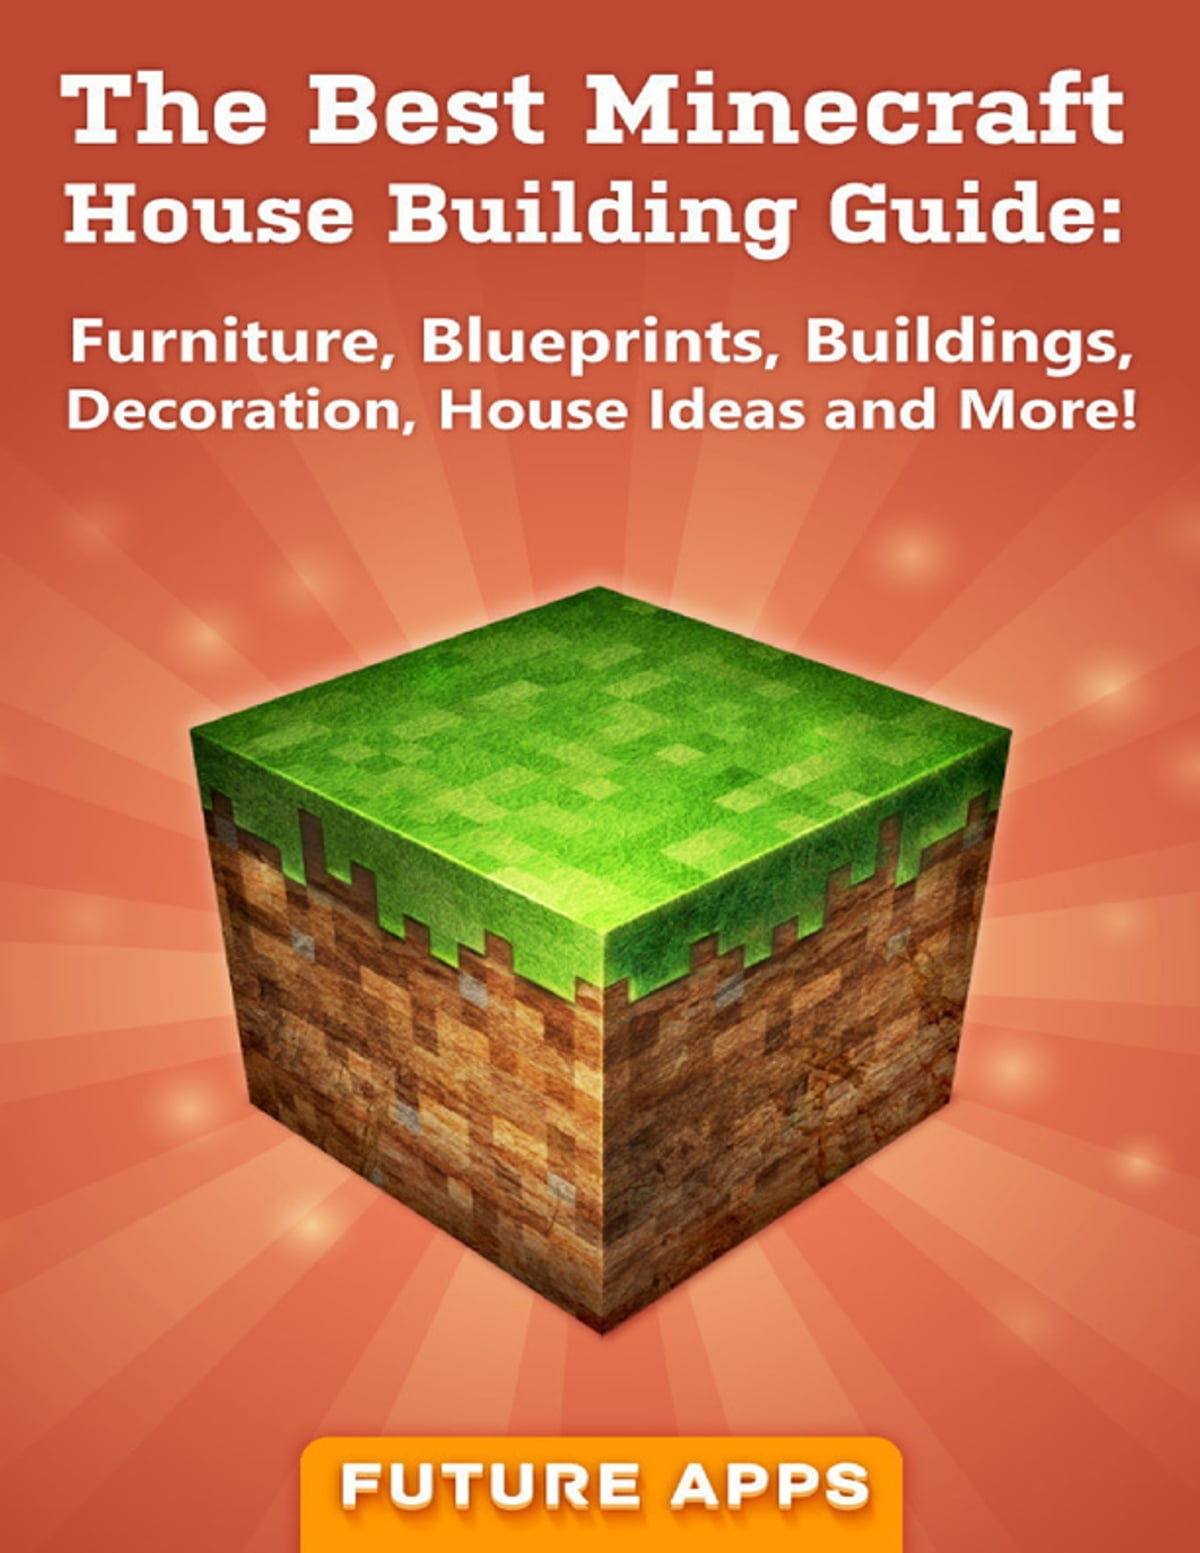 The Best Minecraft House Building Guide Furniture Blueprints Buildings Decoration House Ideas And More Ebook By Minecraft Guides 9781300875109 Rakuten Kobo United States